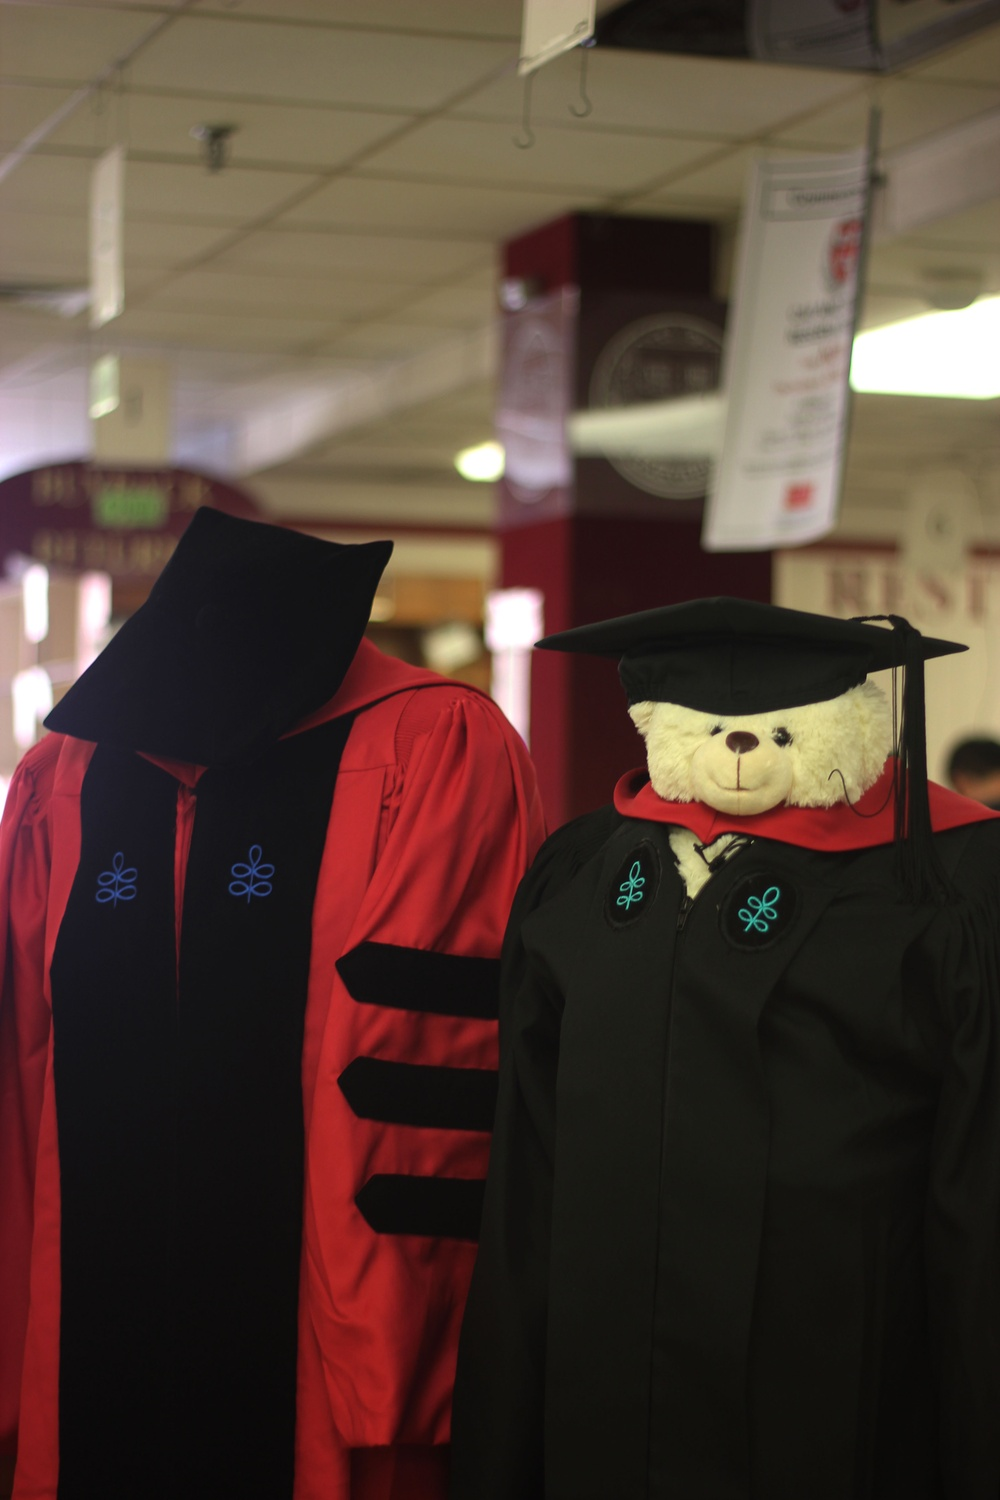 A display of caps and gowns is located in front of the Coop's graduation rental station.